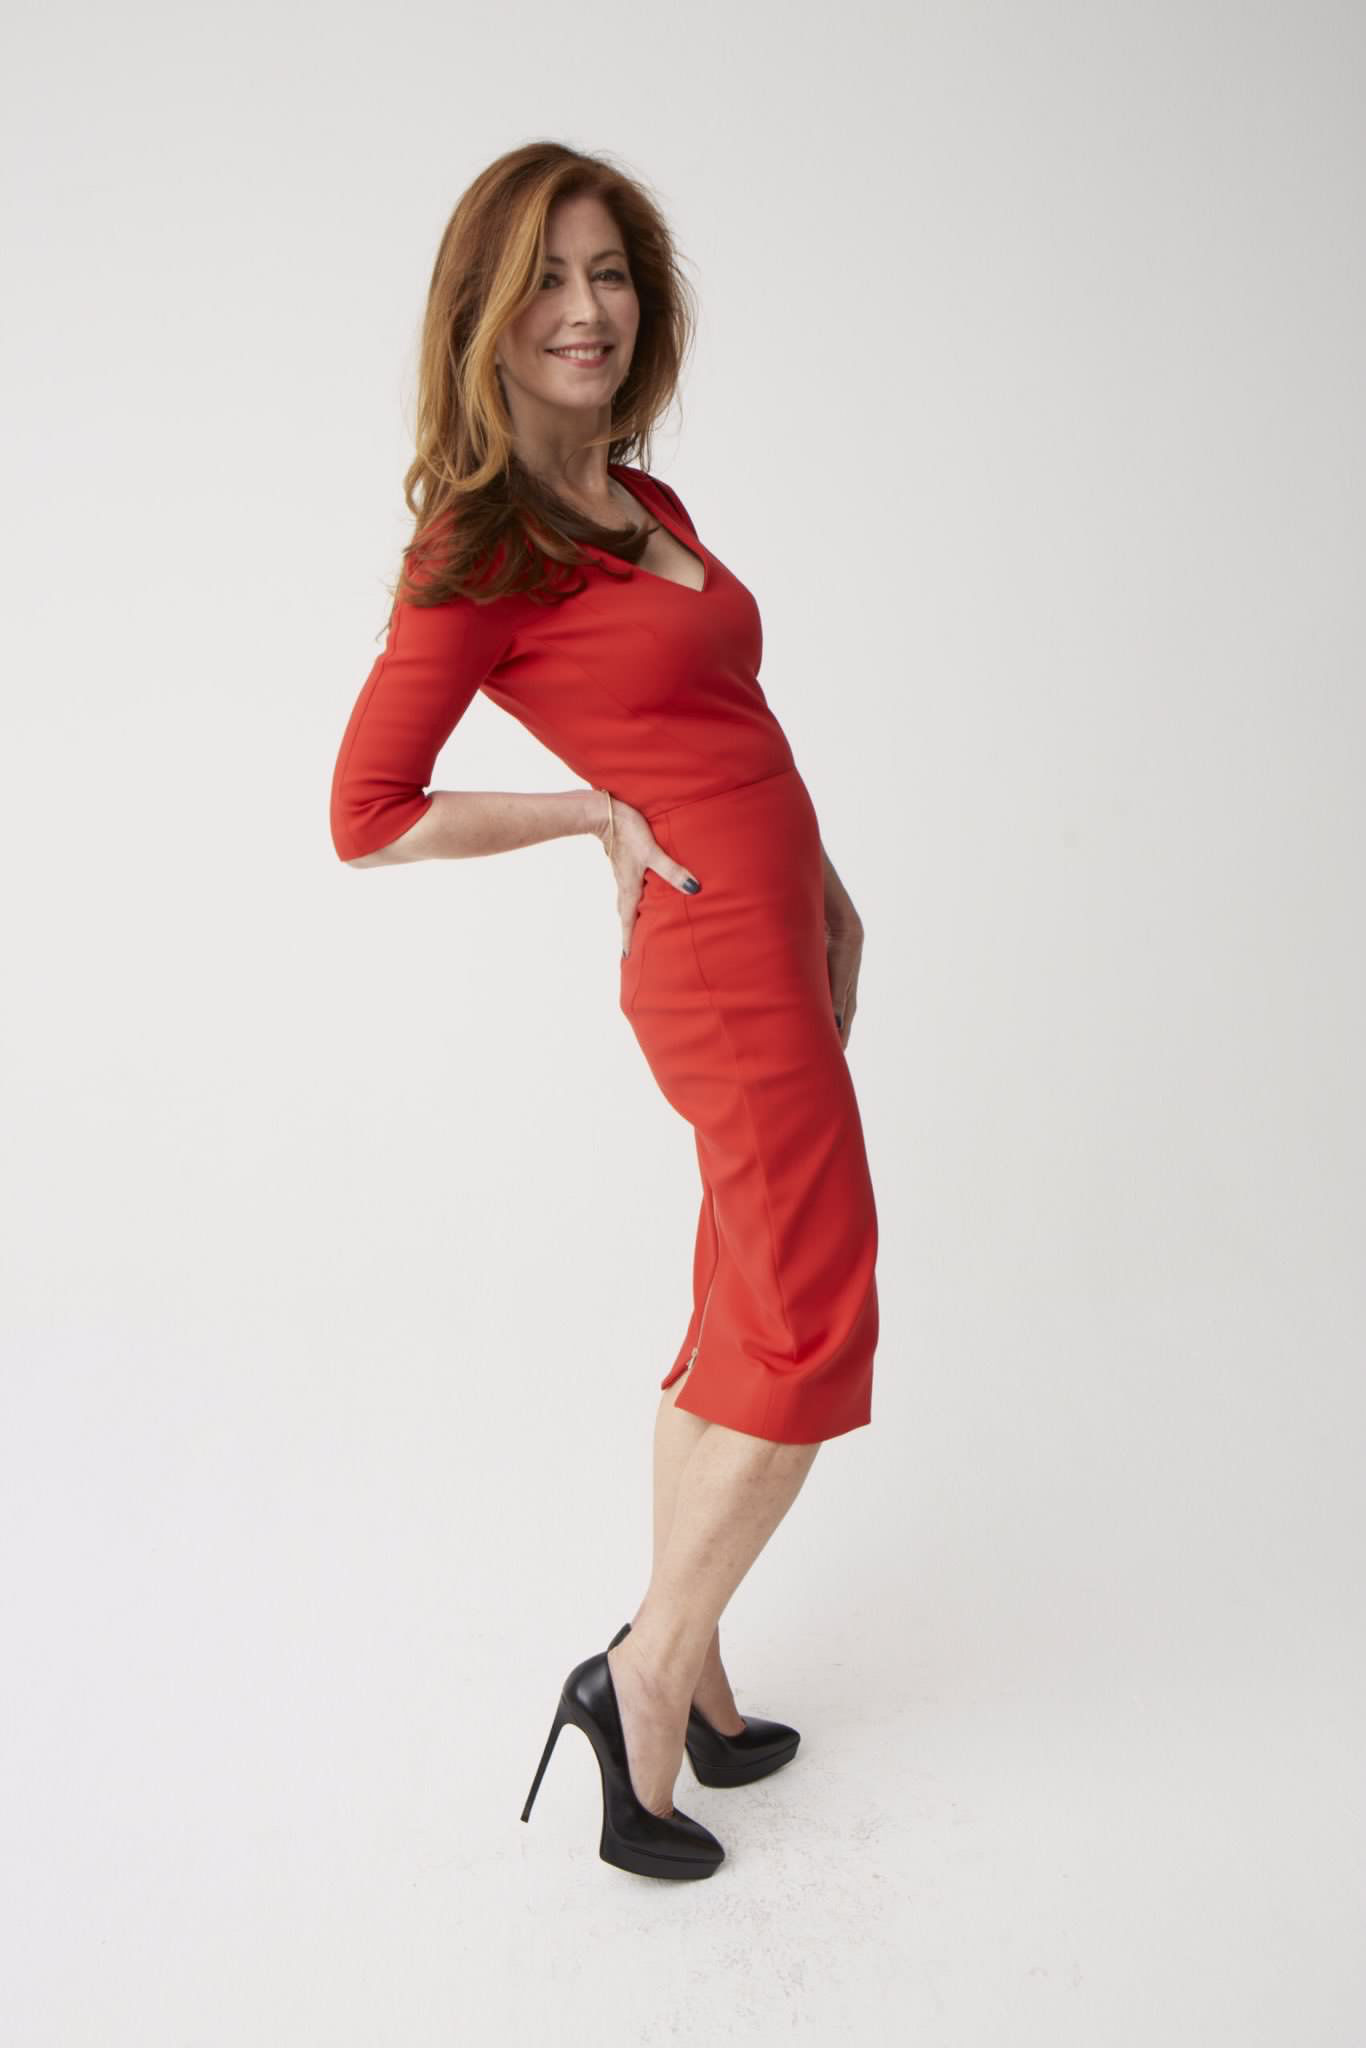 2019 Dana Delany nude (23 foto and video), Ass, Paparazzi, Twitter, butt 2006